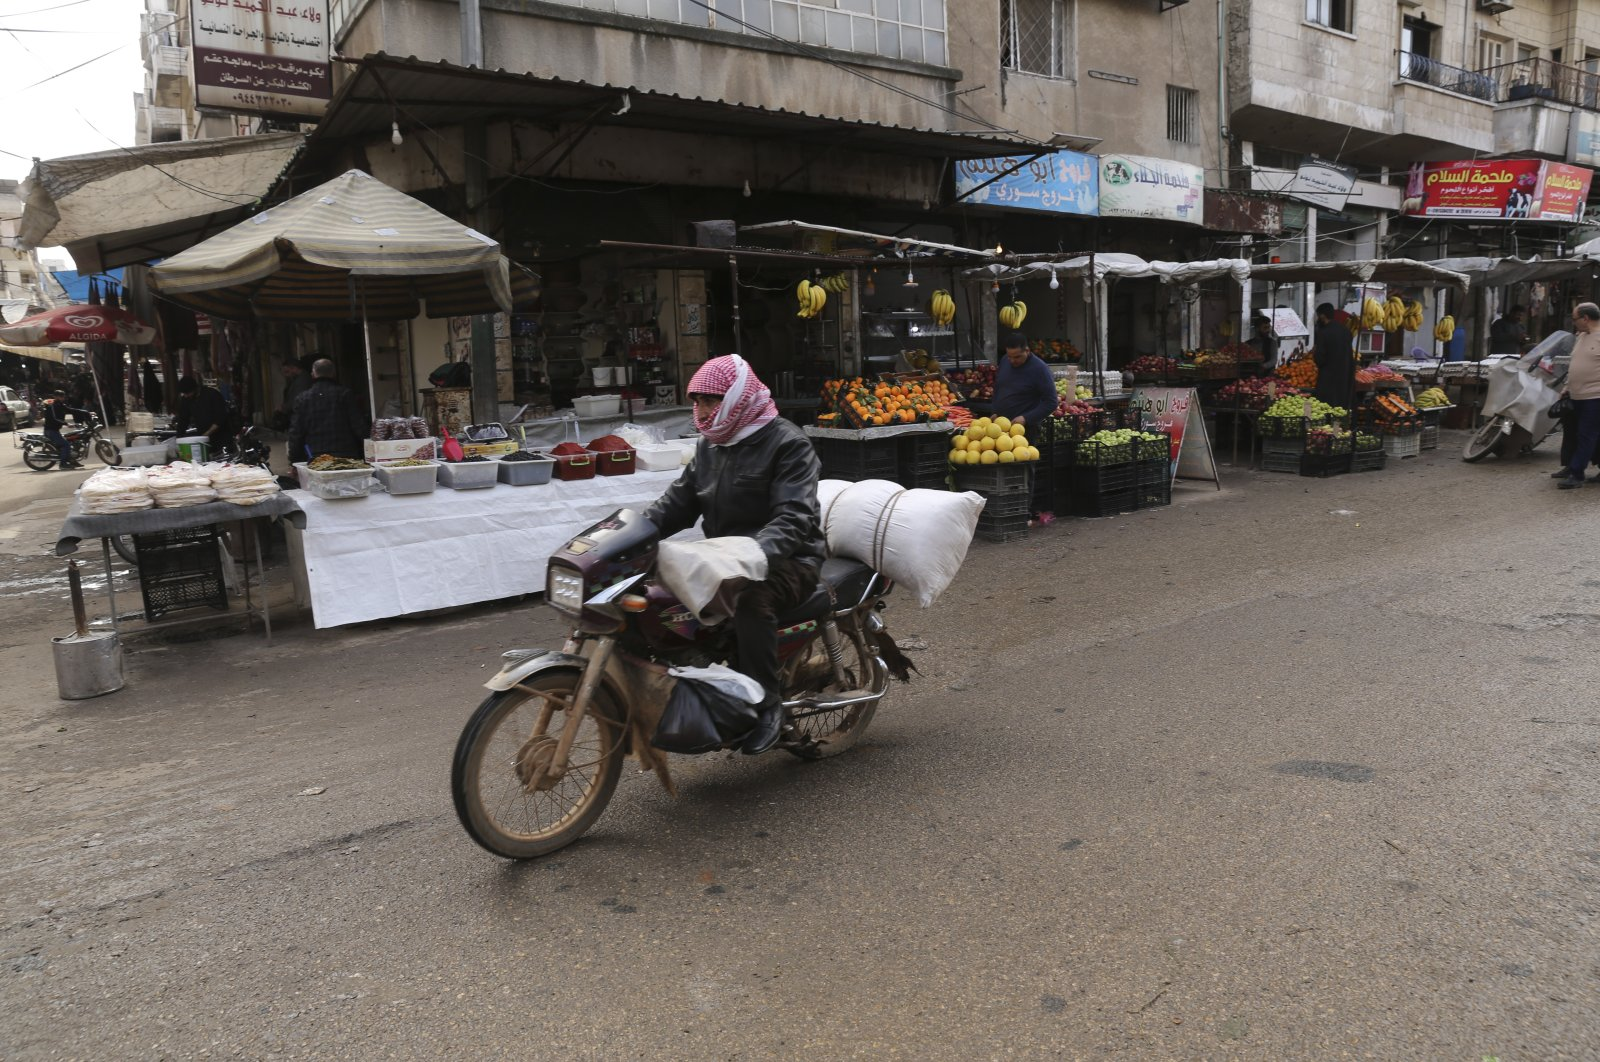 Man rides a motorcycle through a market in the city of Idlib during the ceasefire, March 9, 2020. (AP Photo)